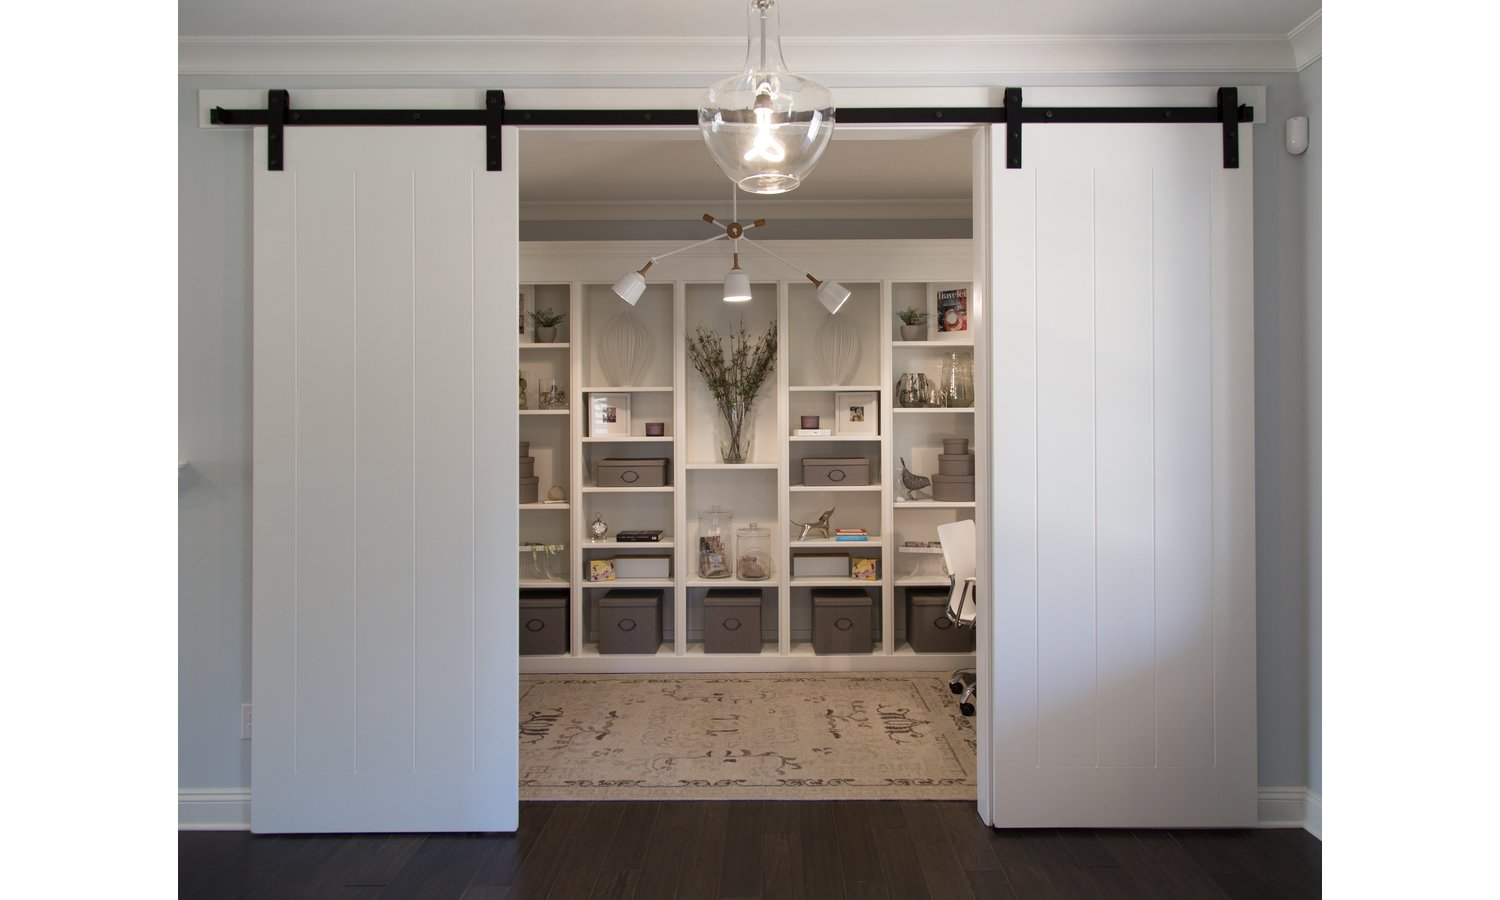 Tiburon - Barn Doors at Study